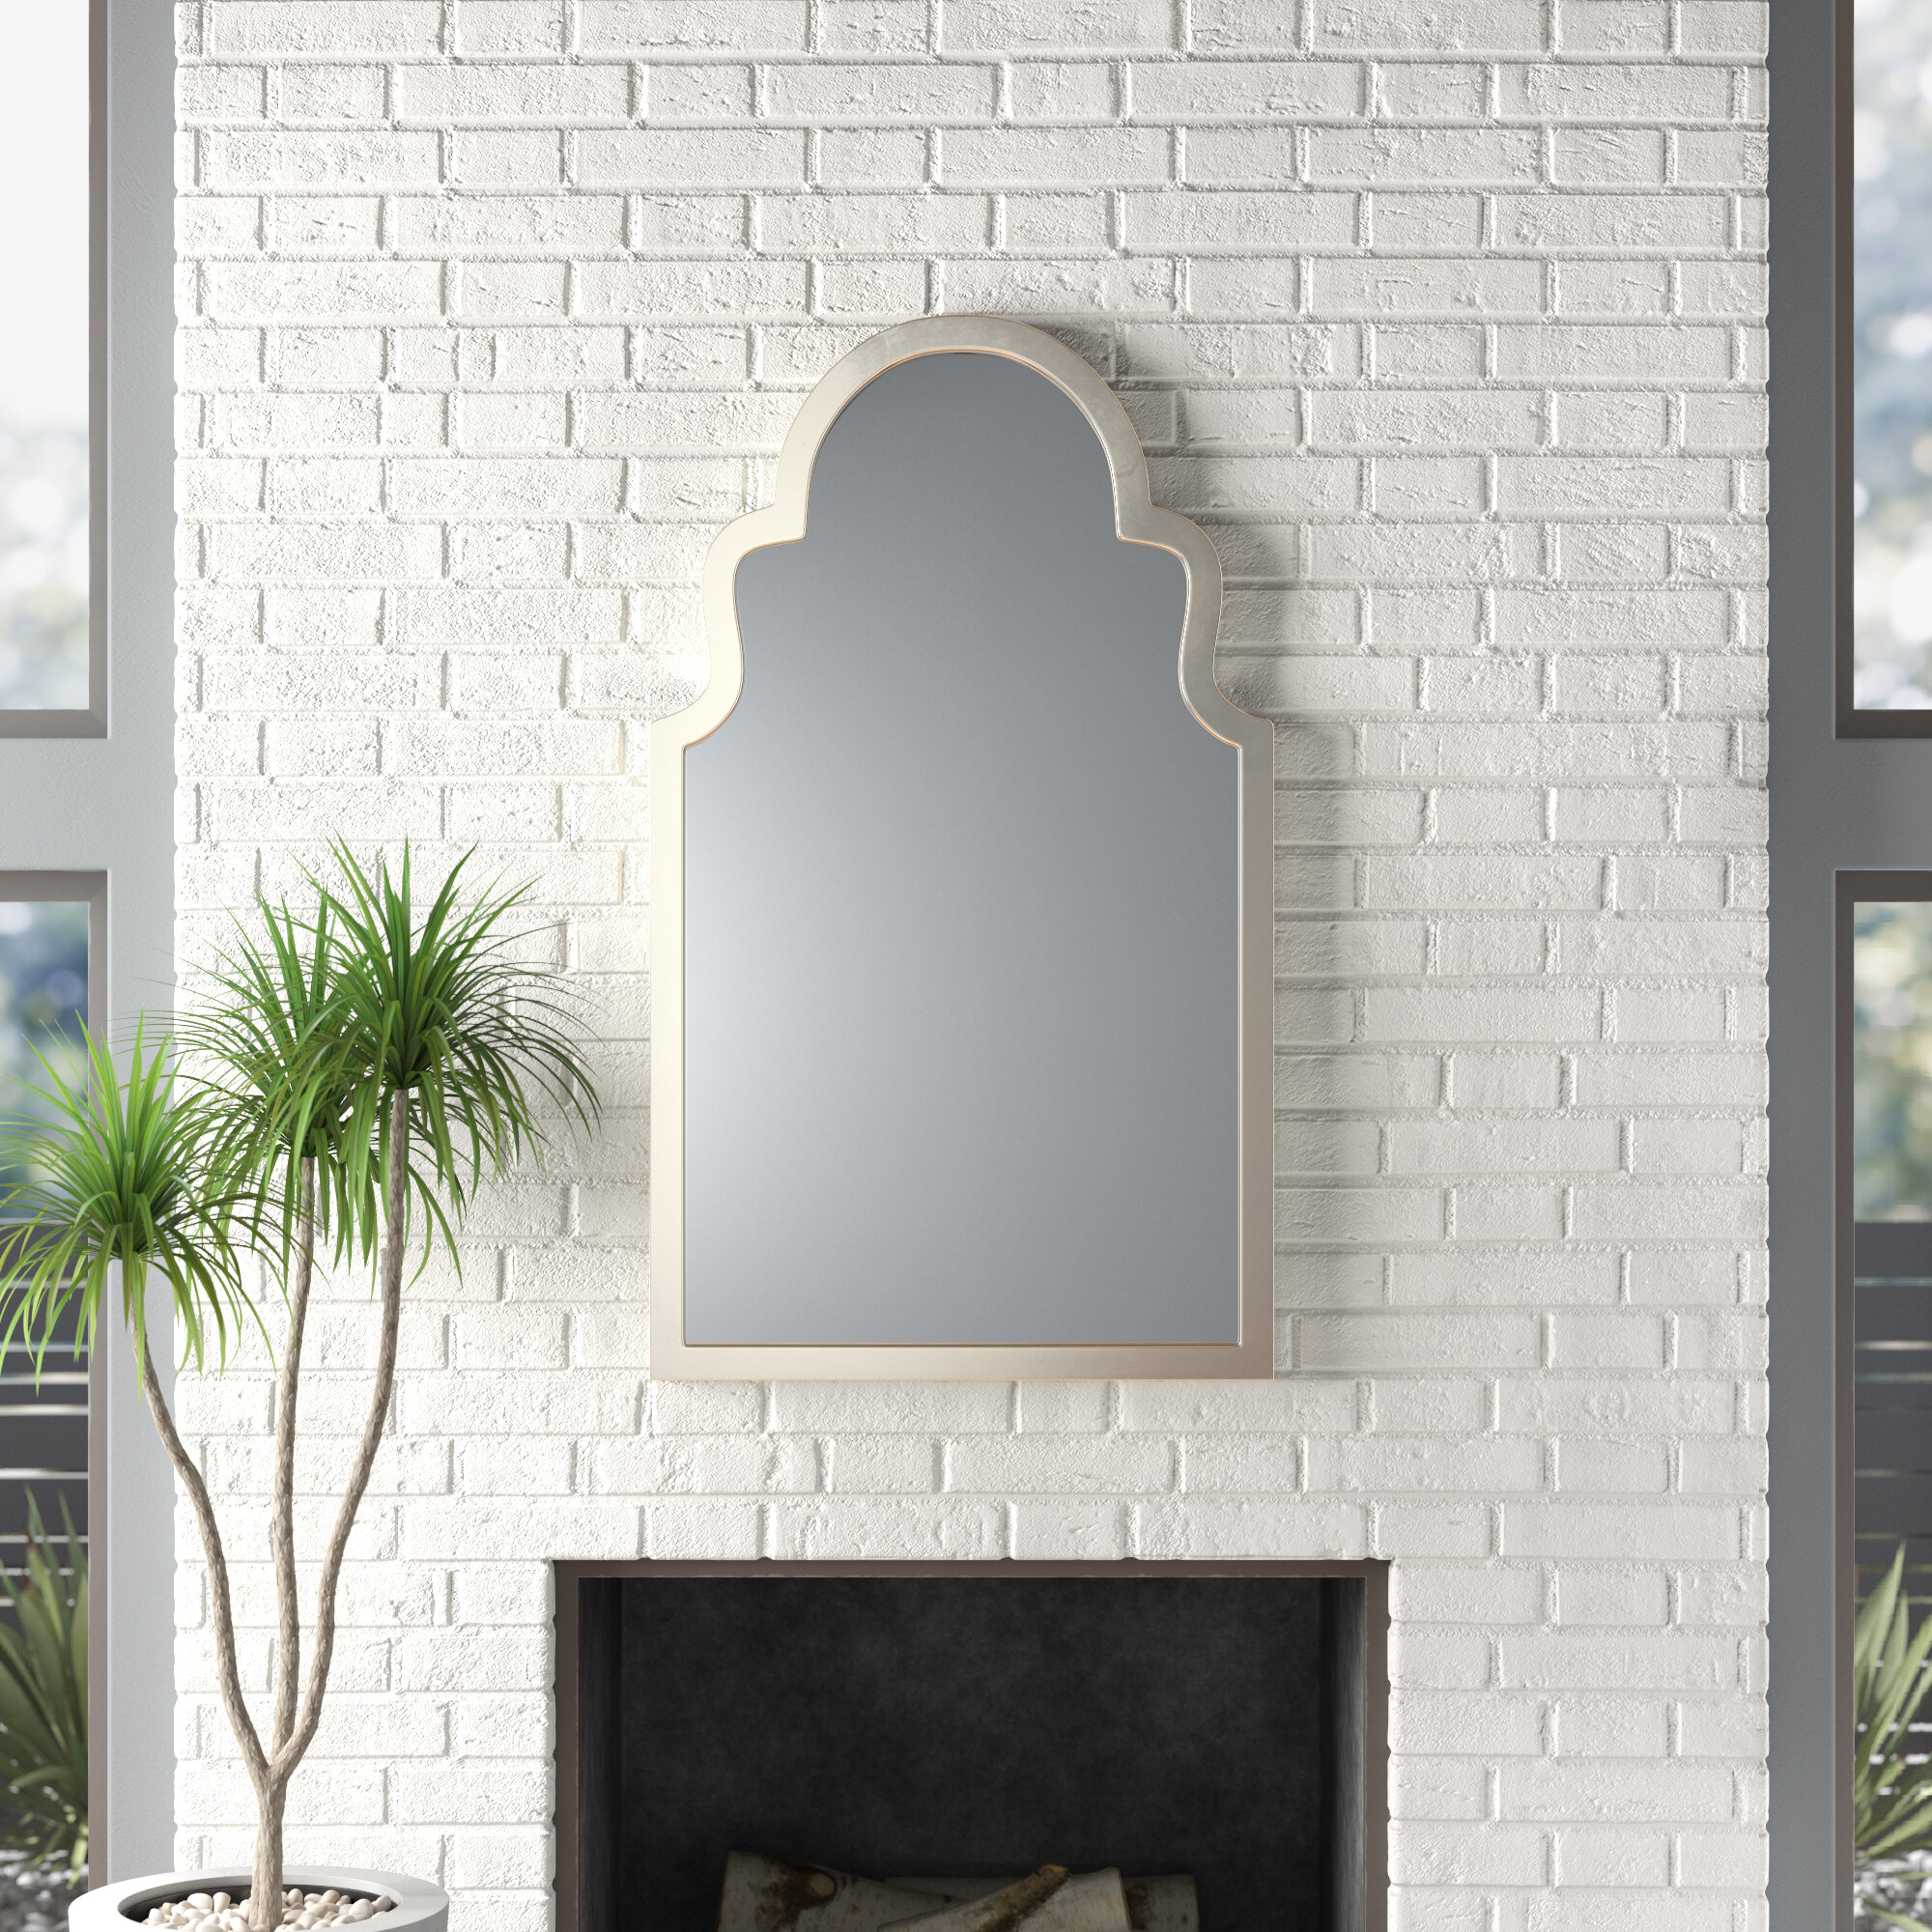 Modern Arch / Crowned Top Wall Mirrors | Allmodern Regarding Fifi Contemporary Arch Wall Mirrors (View 20 of 30)